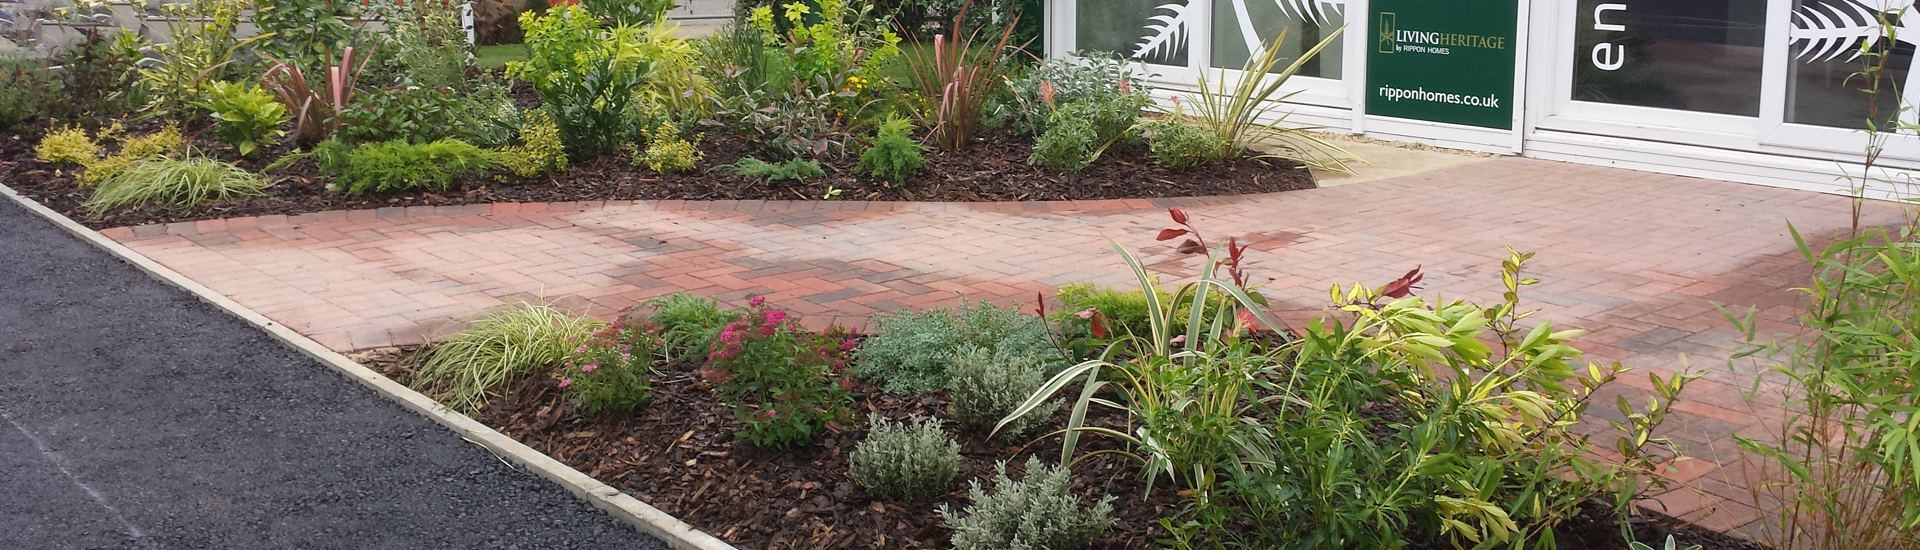 Commercial Landscaping Nottingham